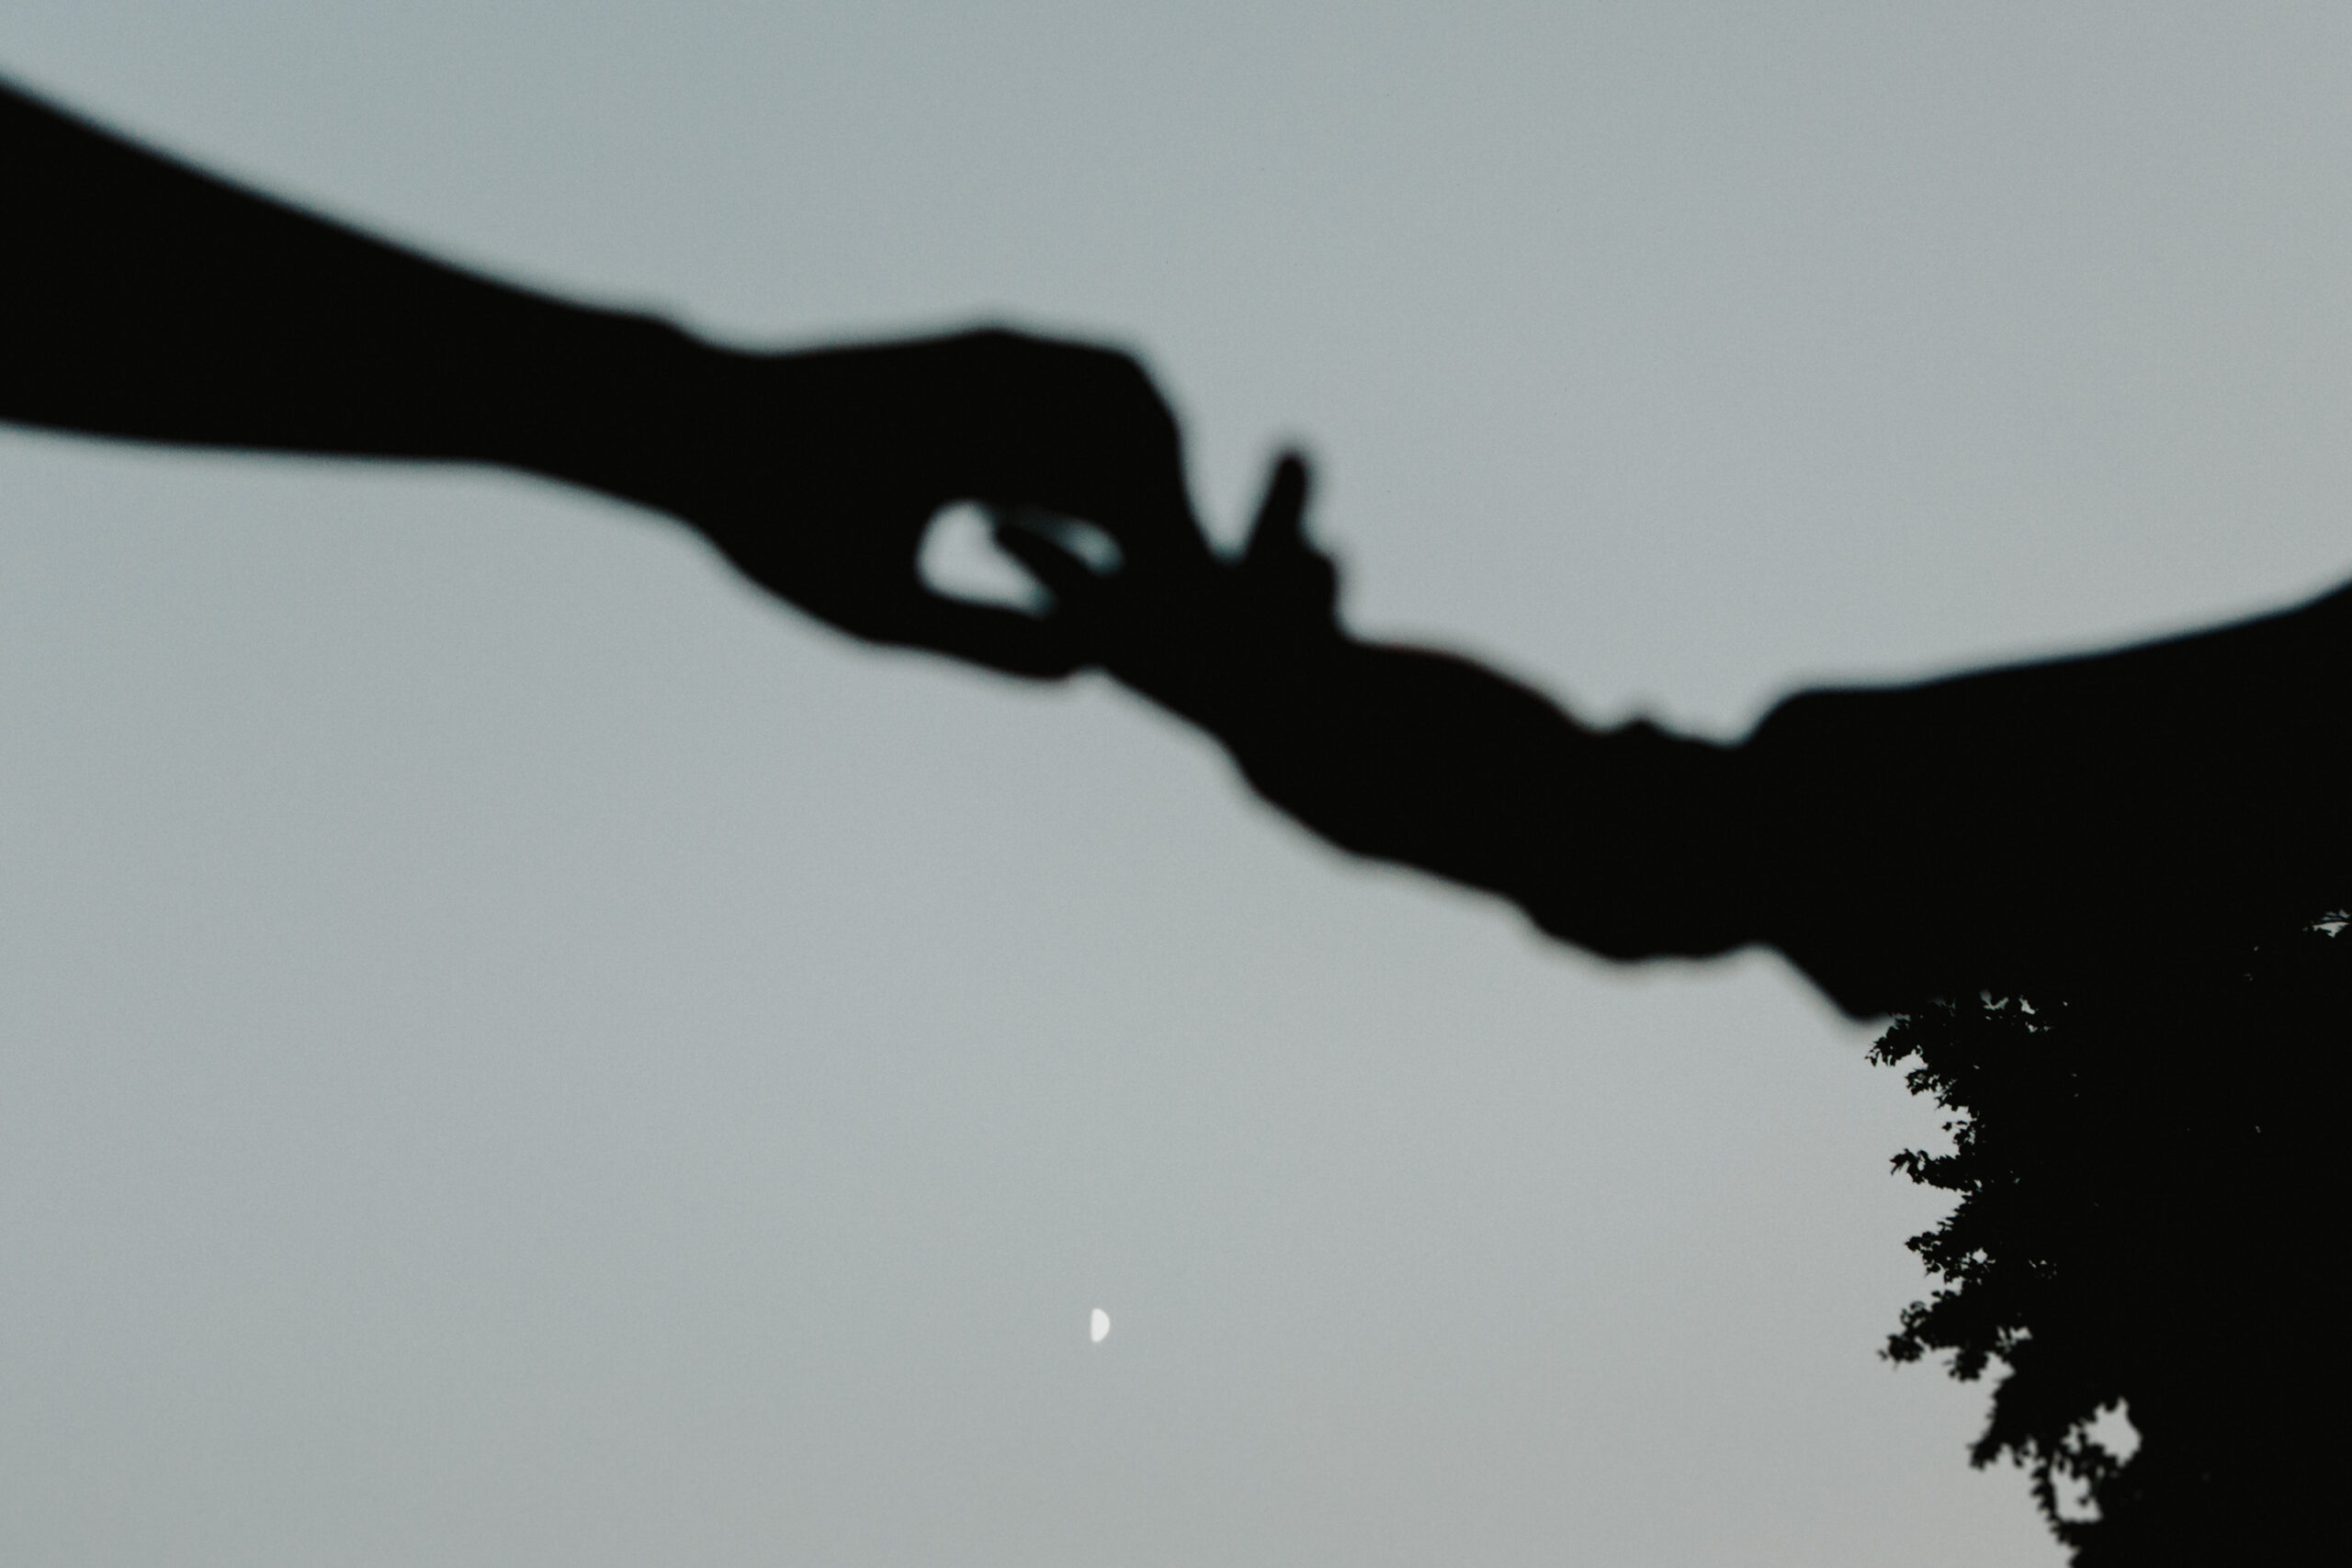 Silhouette of two hands reaching for one another